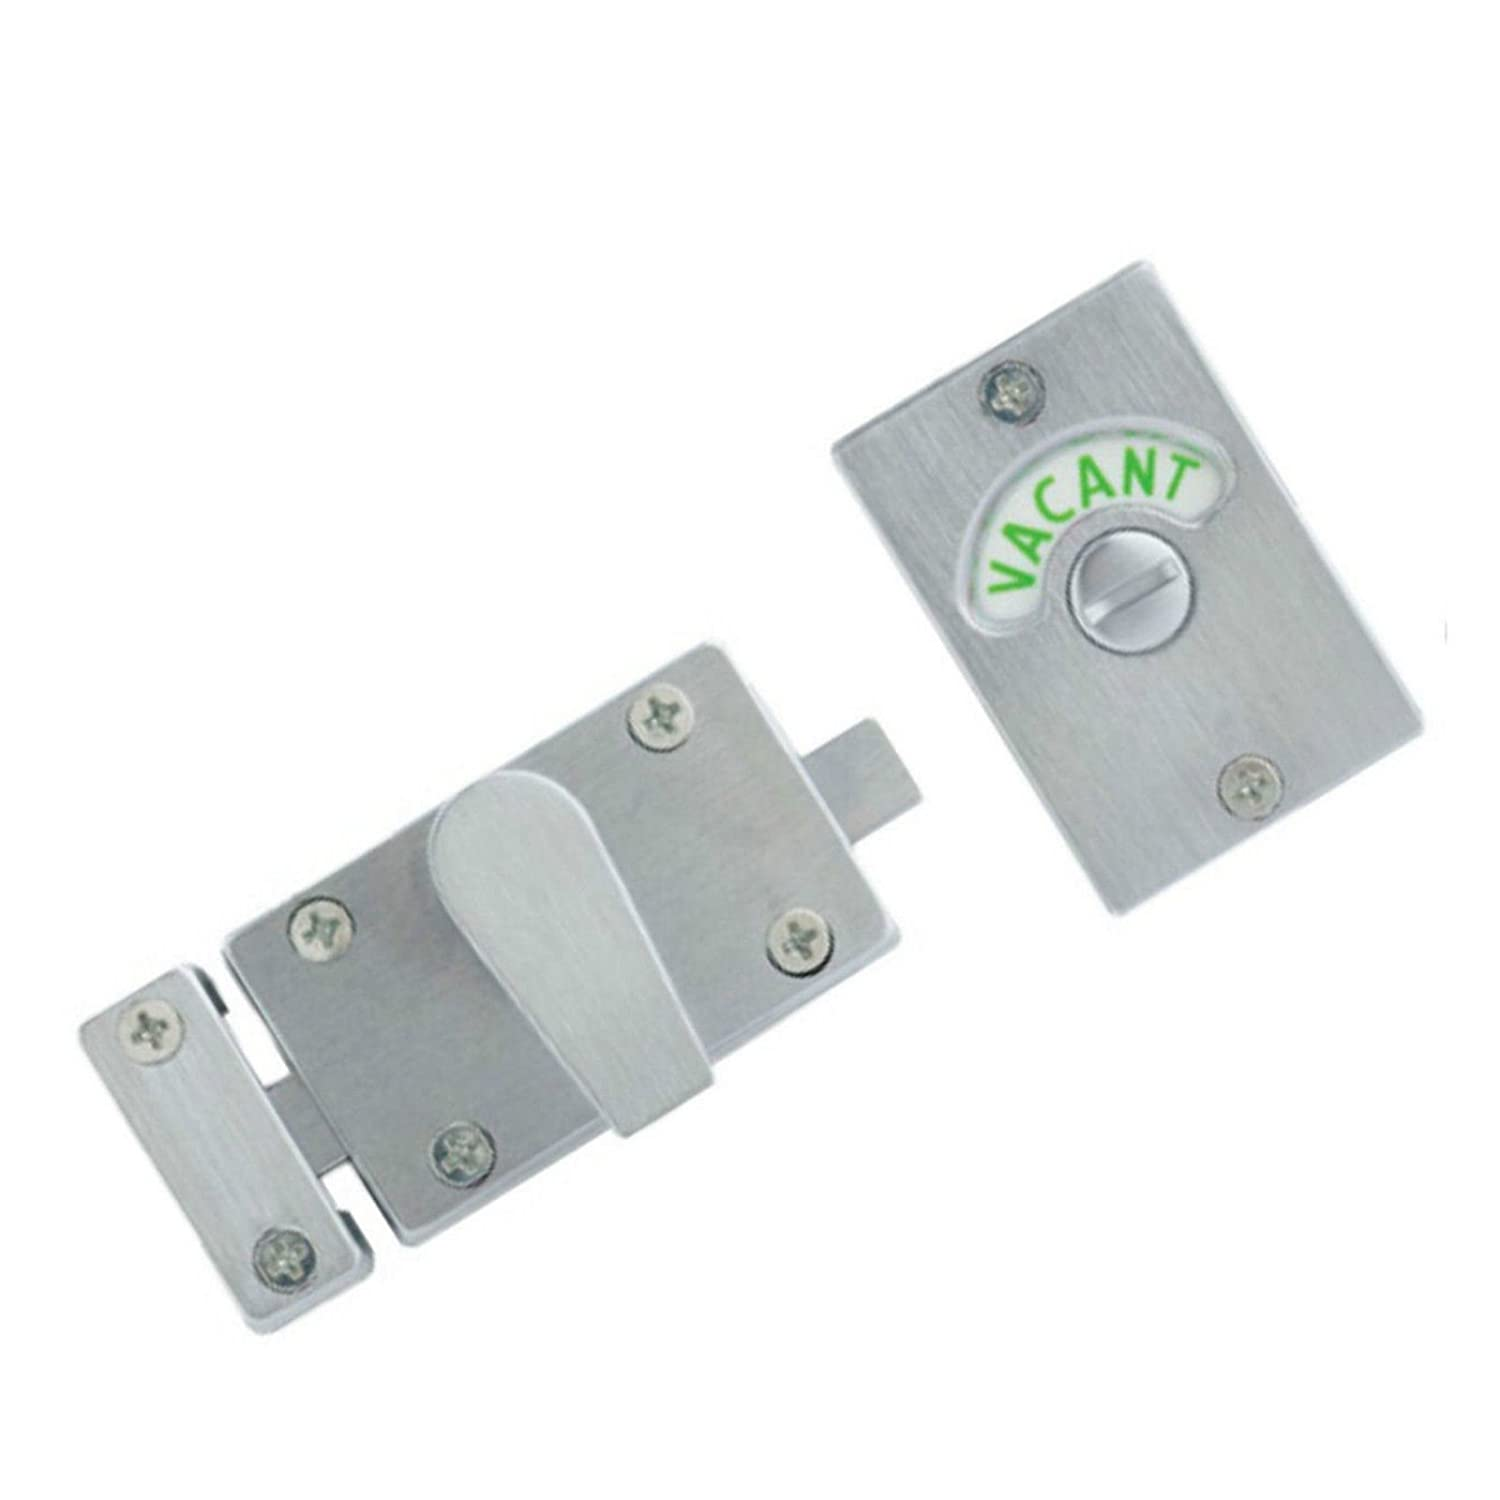 SATIN NICKEL - SN Indicator Bolt with Vacant / Engaged Bathroom Toilet Door Lock ChoicefullBargain